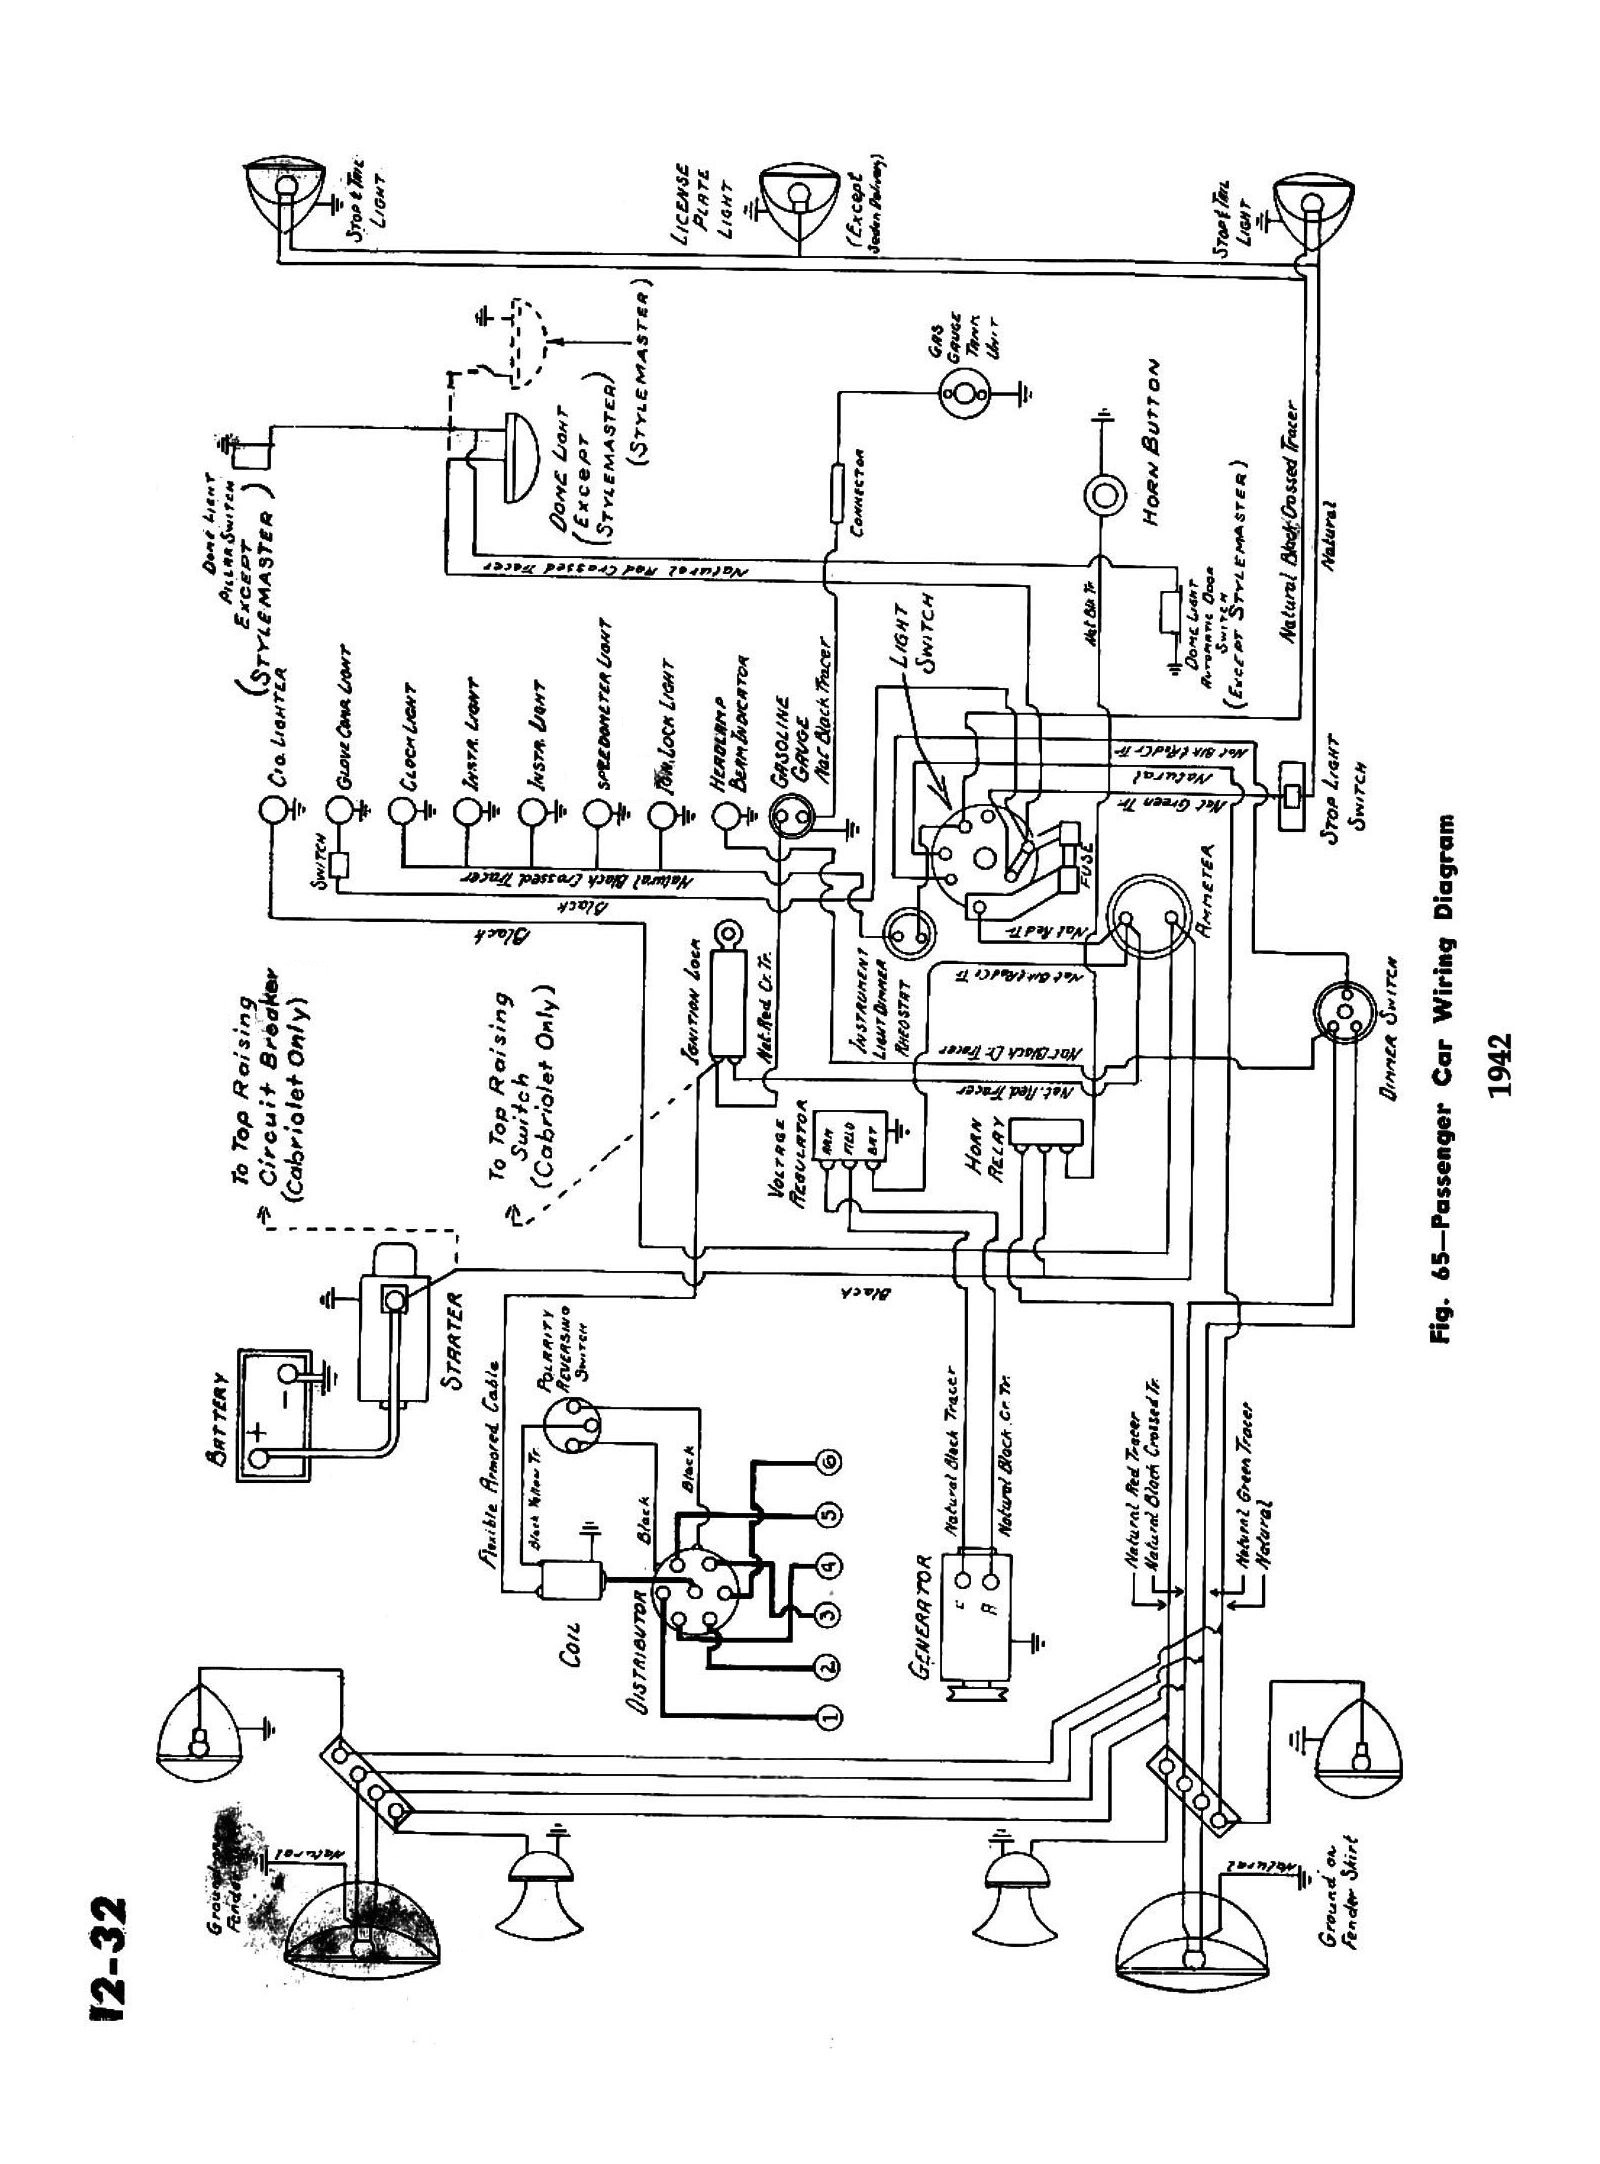 For Cj Ignition Wiring Diagram Library 78 Chevy Van Harness 1942 Truck Starter Free Engine 1978 Jeep Cj5